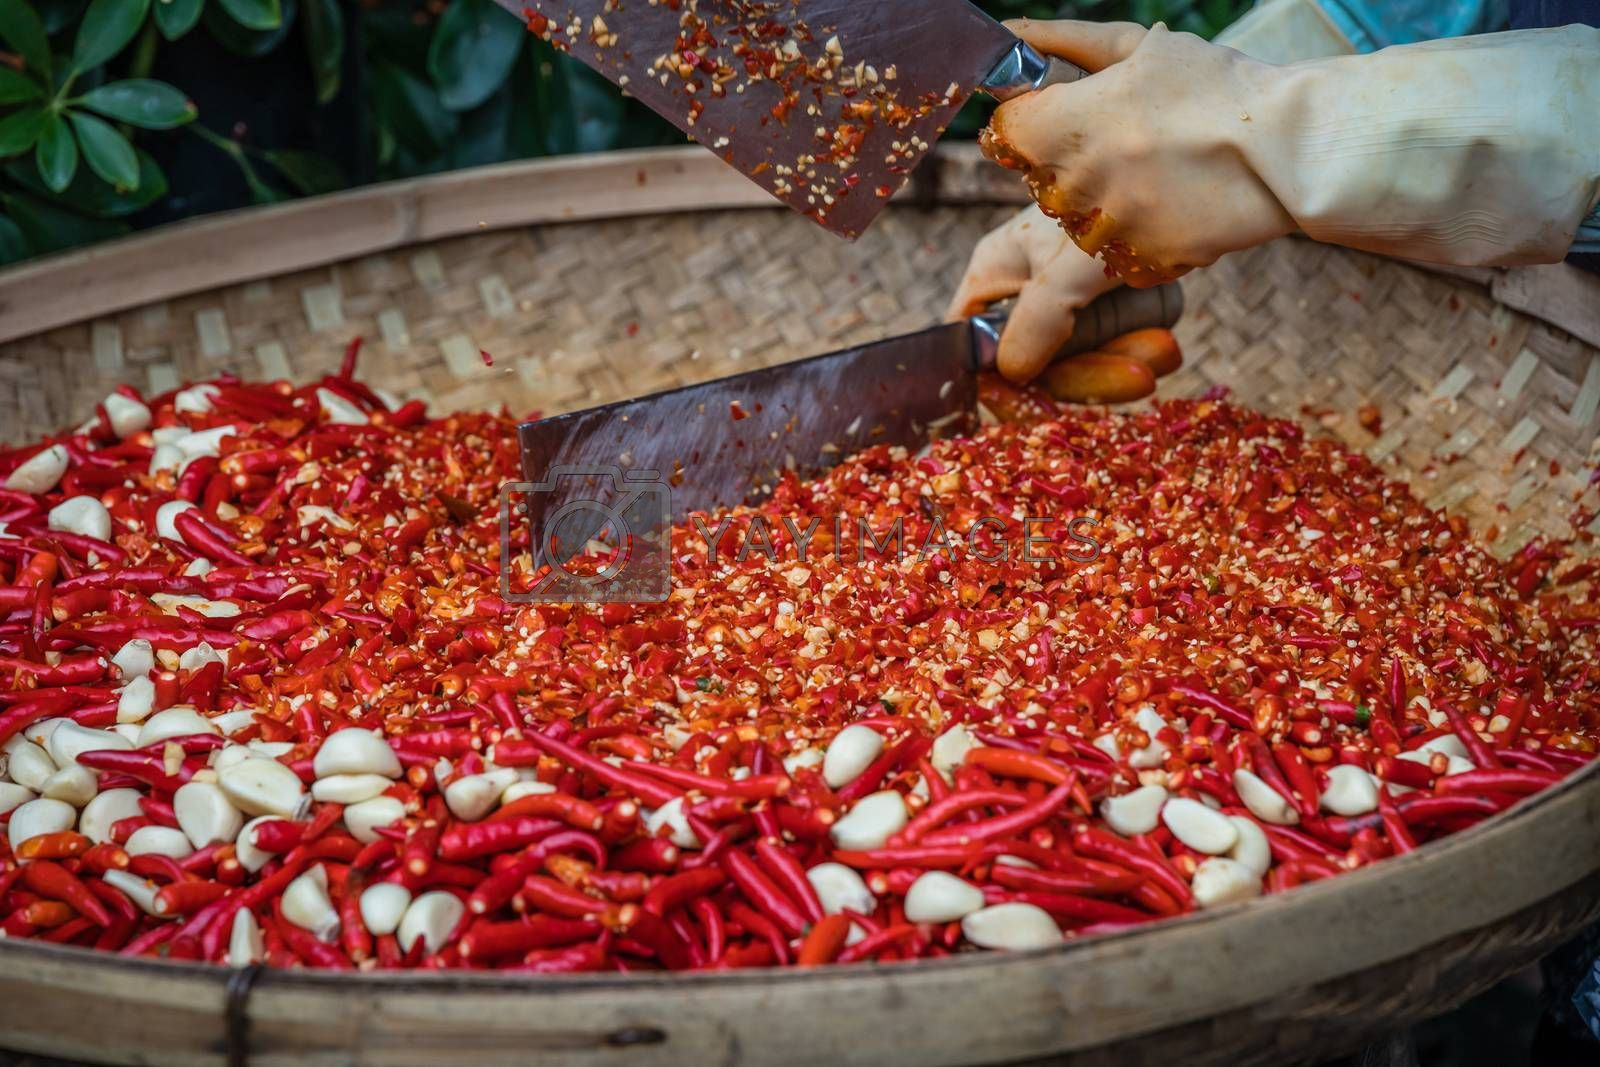 Chillies and garlic being chopped in a wicker bowl by pawopa3336